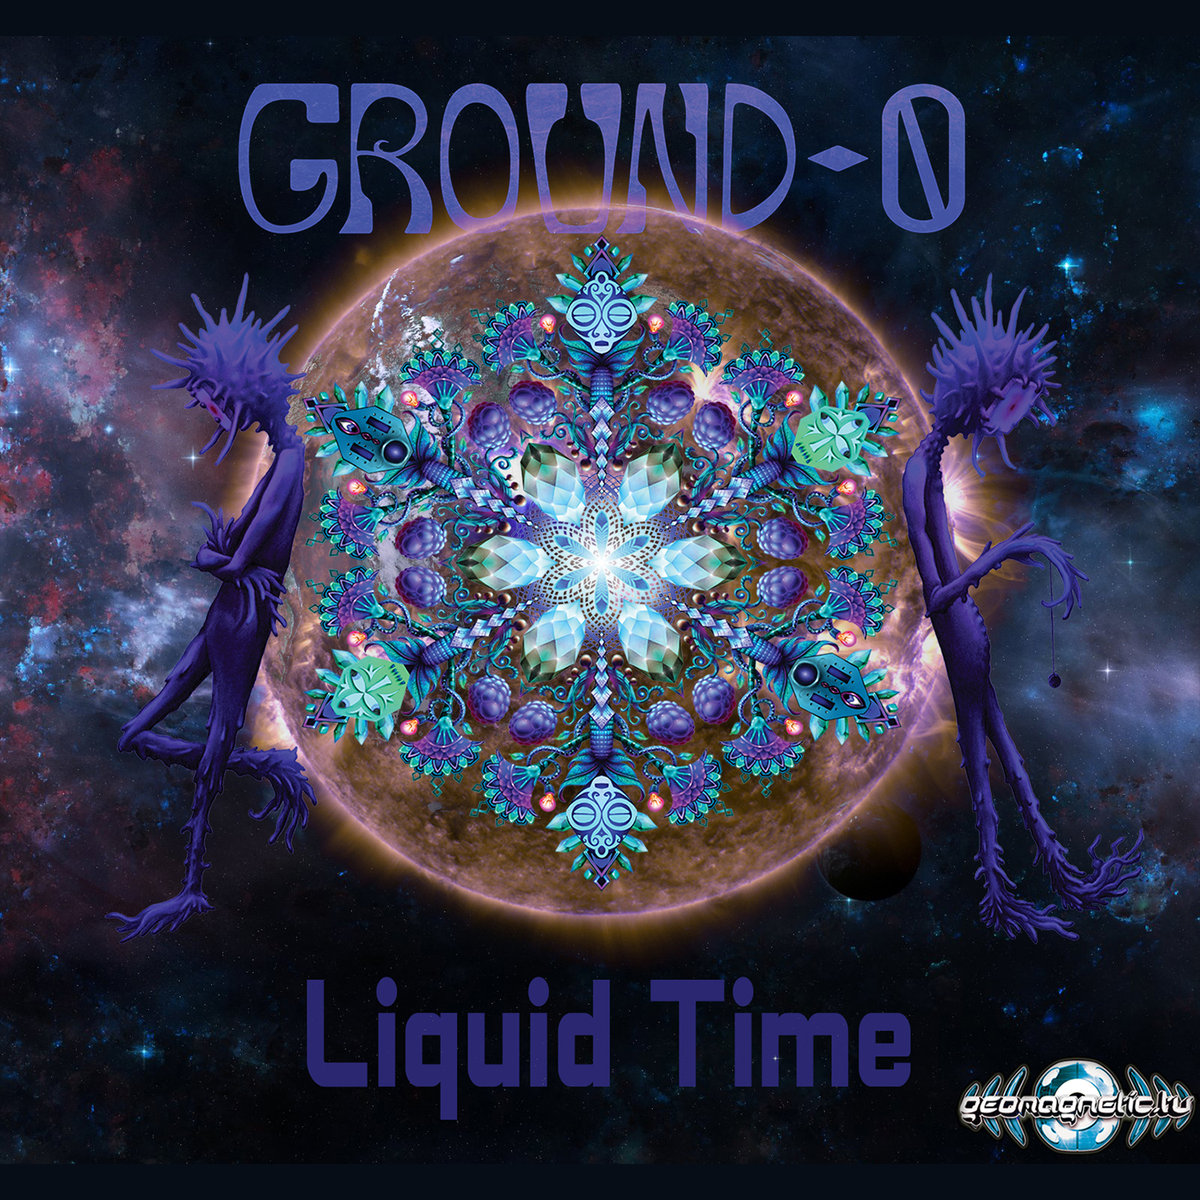 Ground 0 - Ethnic Time @ 'Liquid Time' album (electronic, goa)